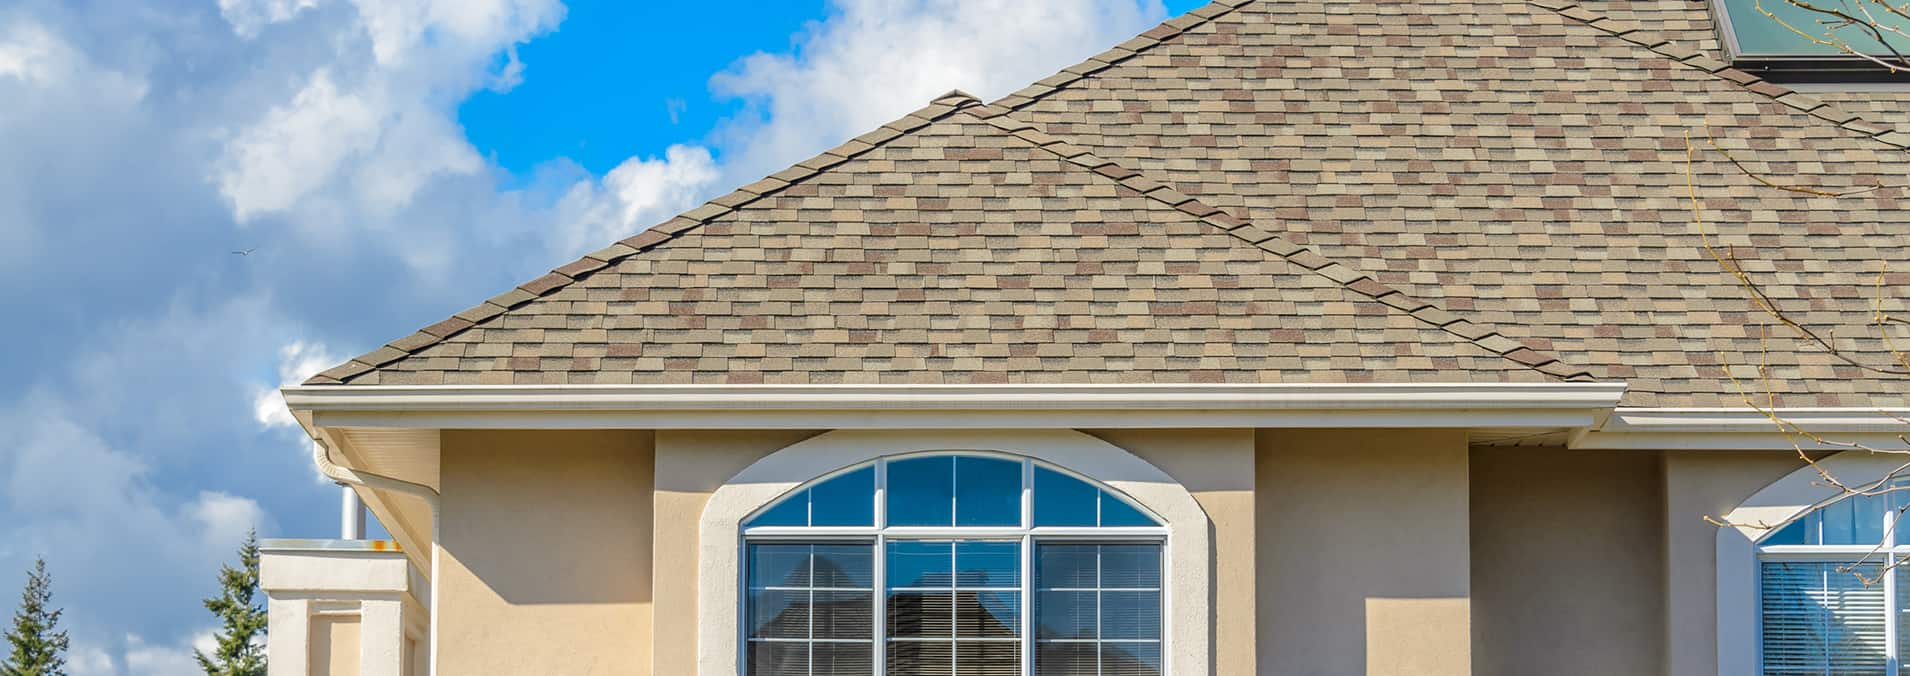 Residential Roofing GA